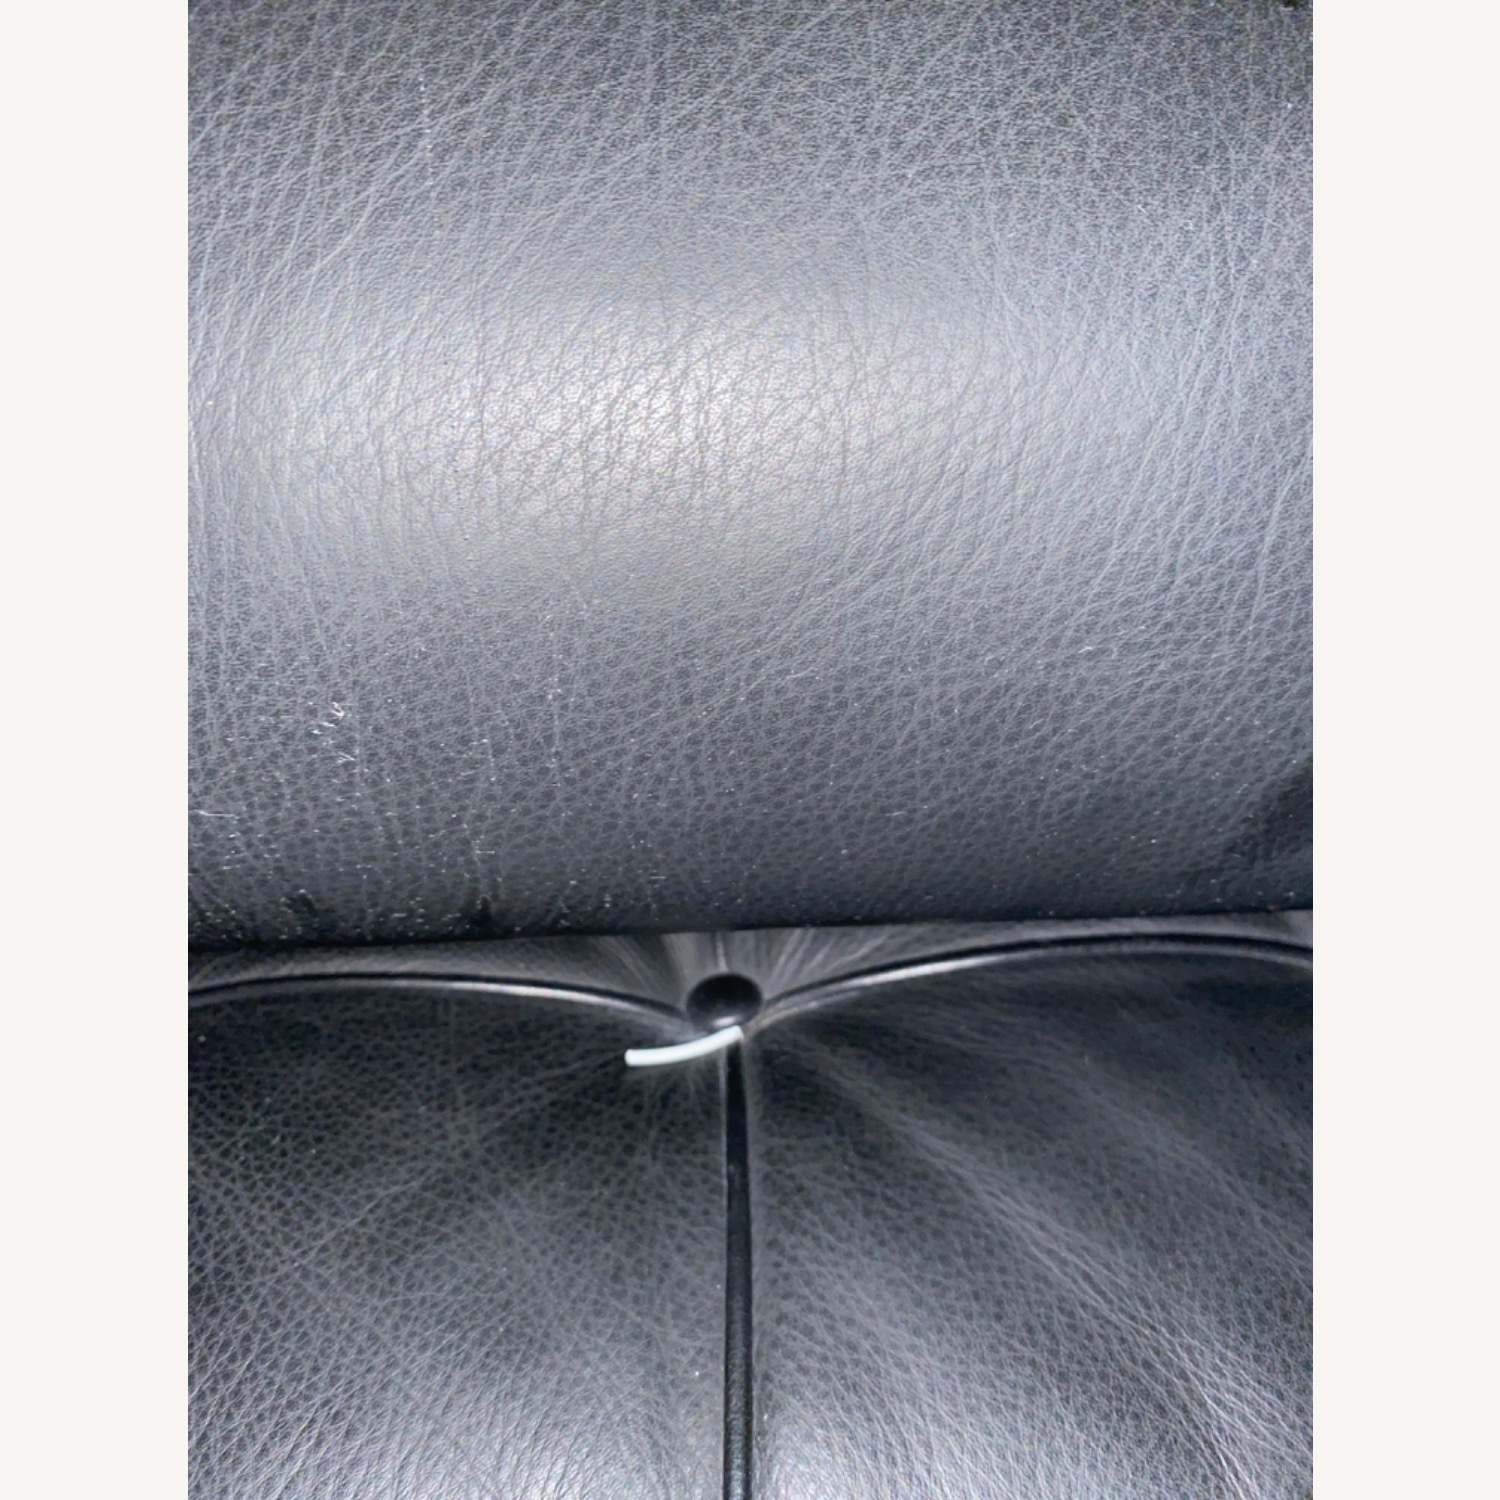 Knoll Barcelona Couch - image-2